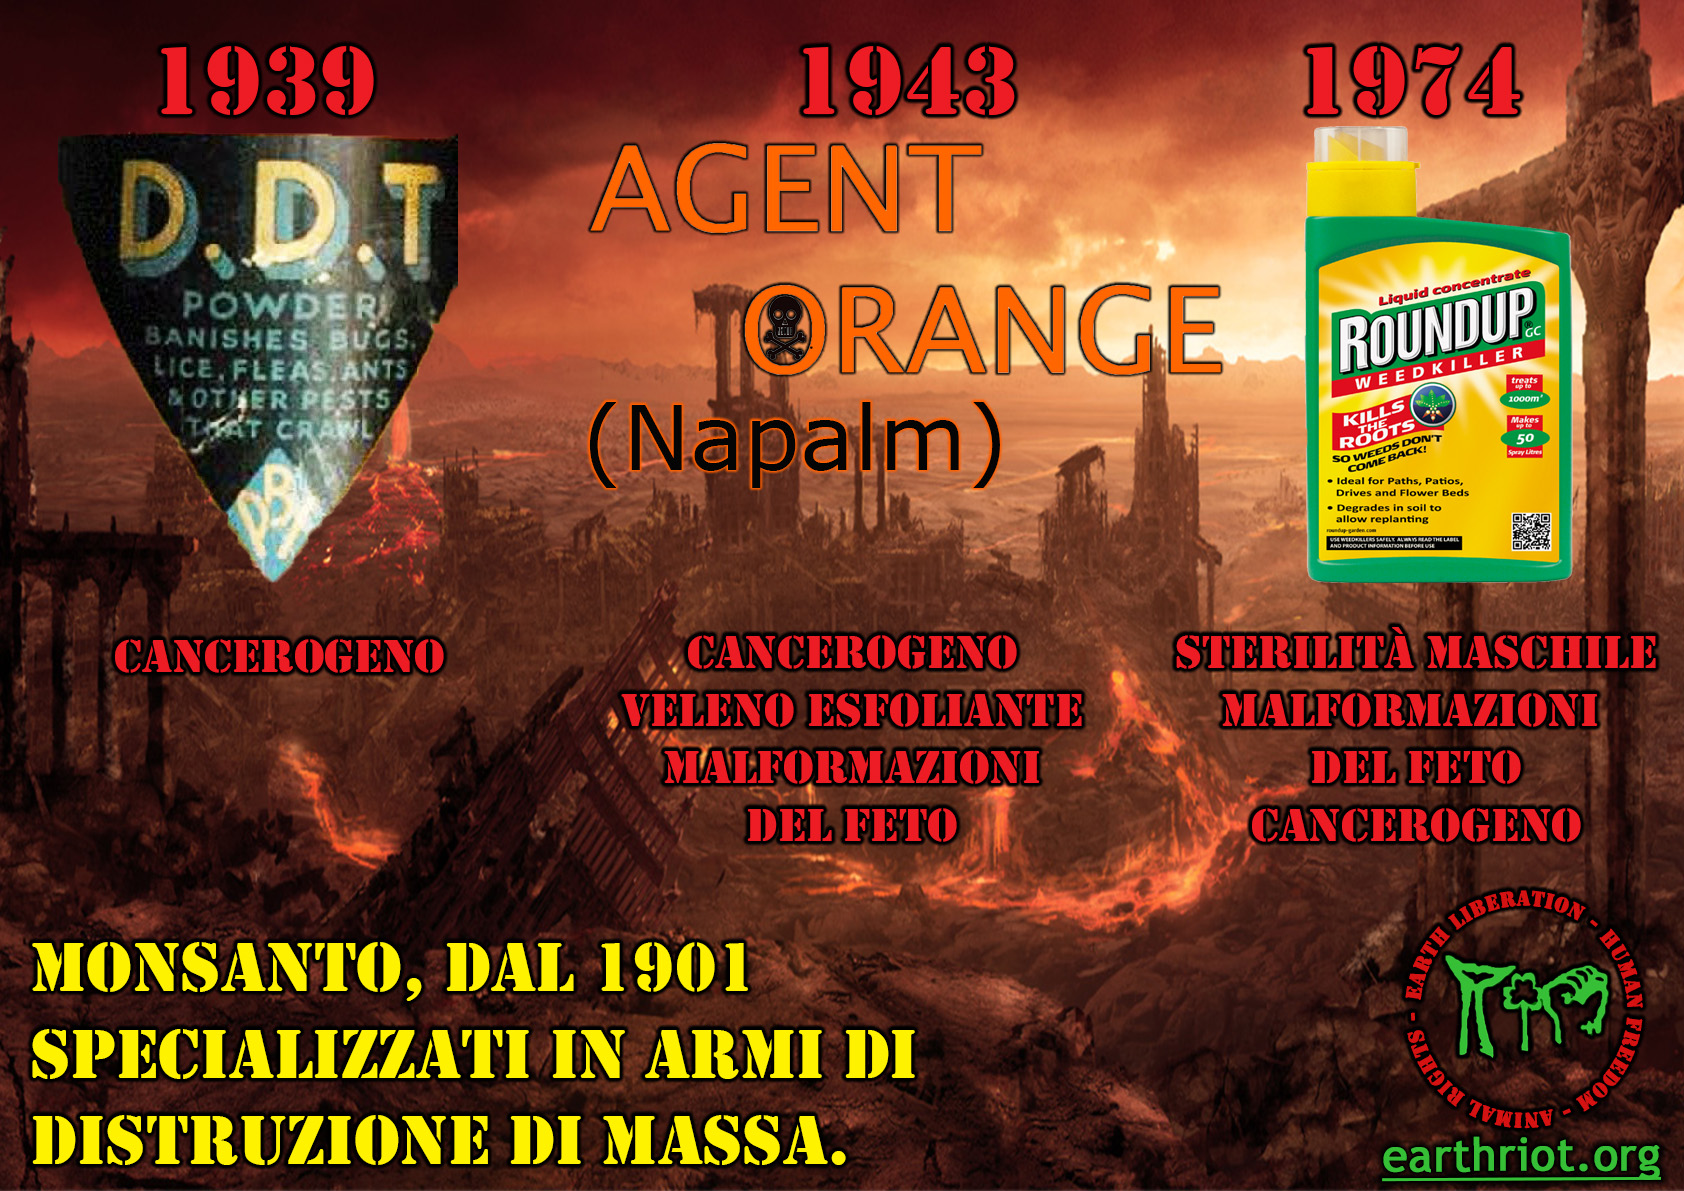 armi chimiche monsanto A2